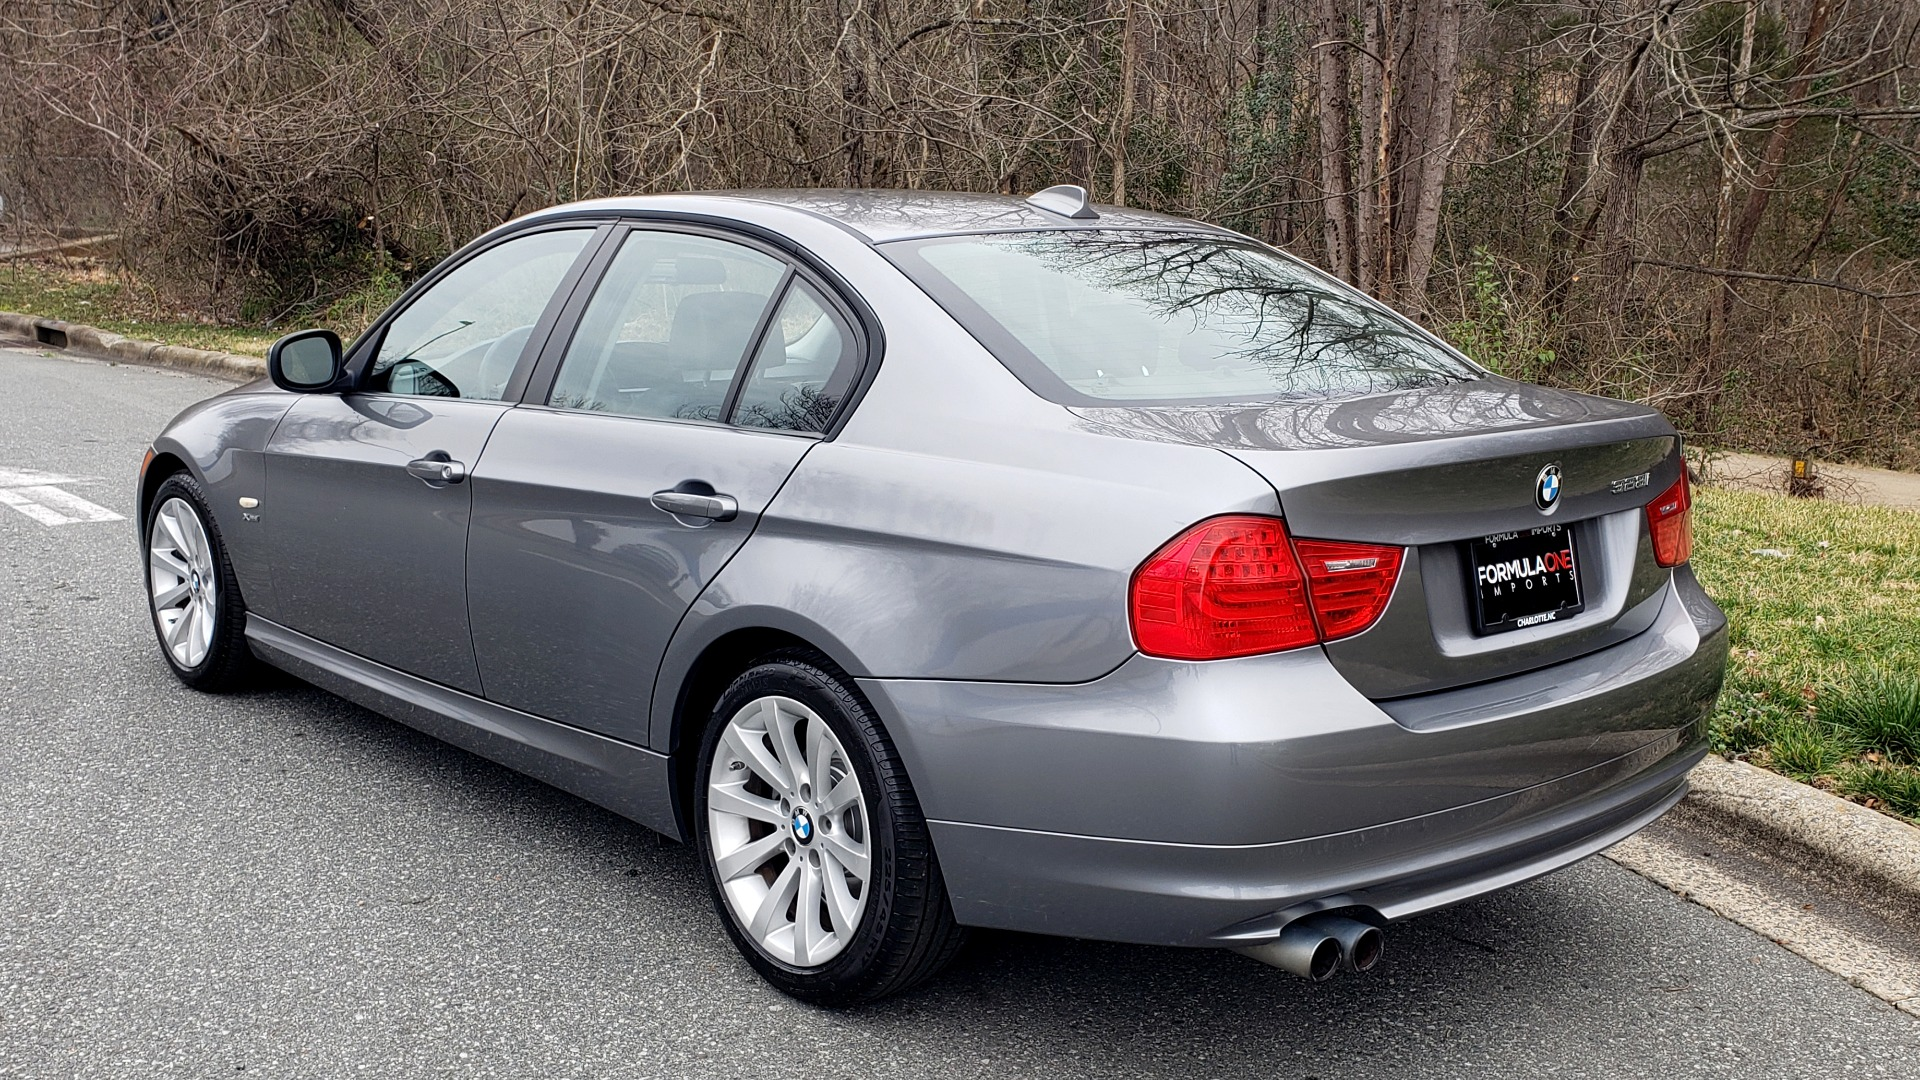 Used 2011 BMW 3 SERIES 328IXDRIVE PREMIUM / NAV / SUNROOF / HEATED SEATS for sale Sold at Formula Imports in Charlotte NC 28227 3